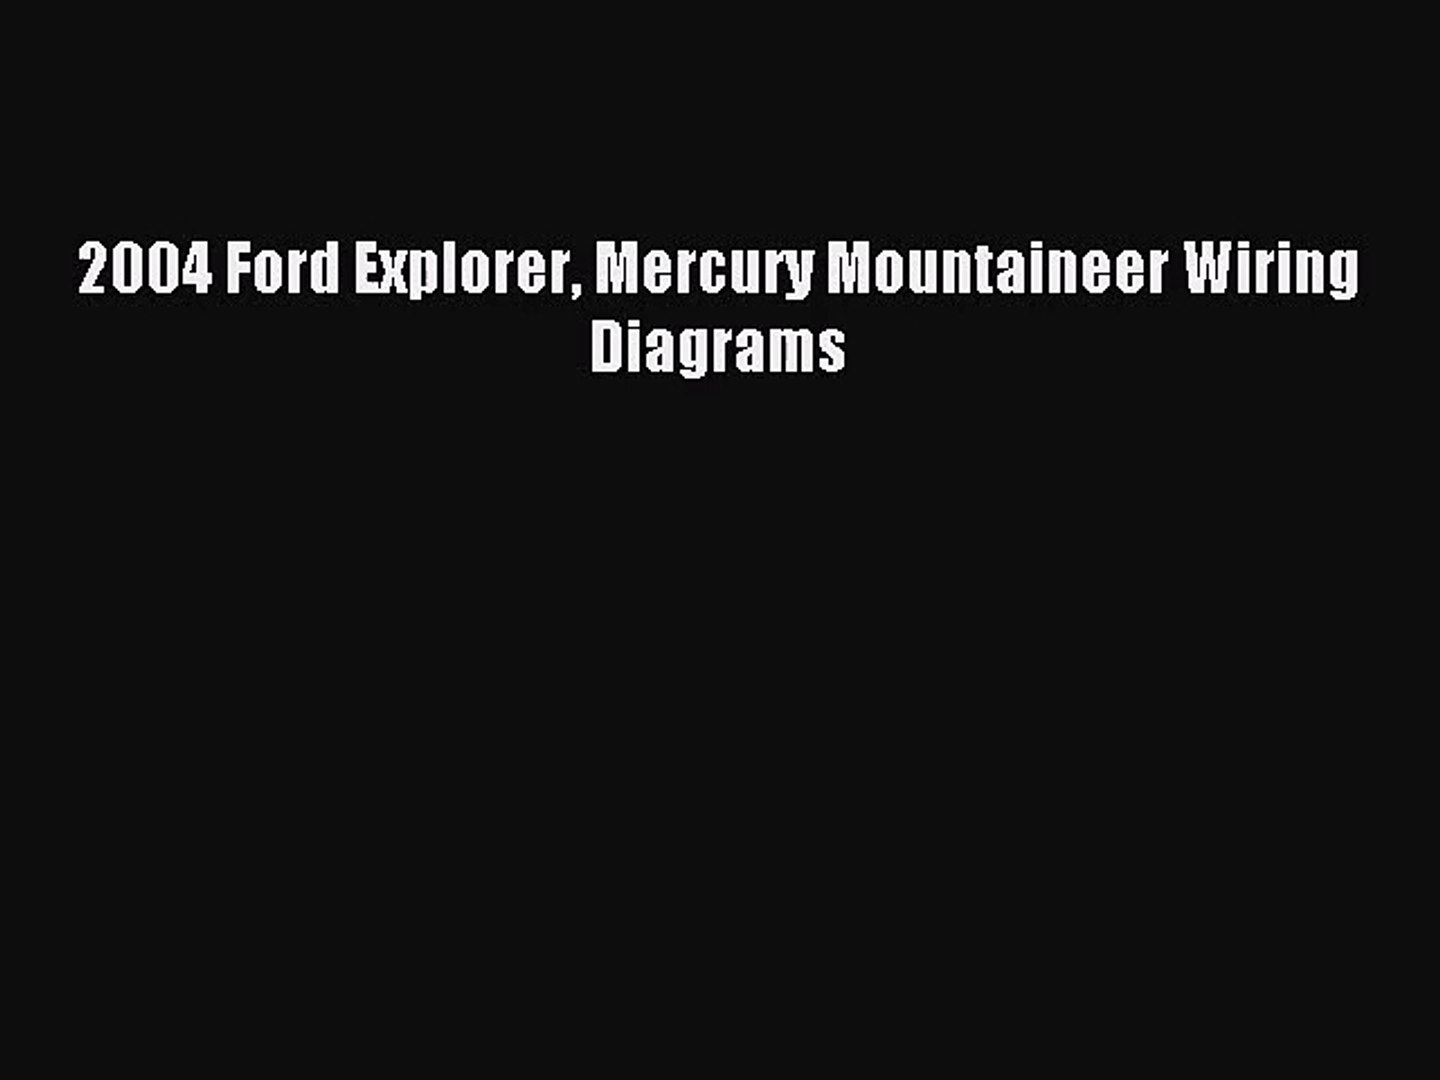 Pdf Download 2004 Ford Explorer Mercury Mountaineer Wiring Diagrams Download Full Ebook Video Dailymotion